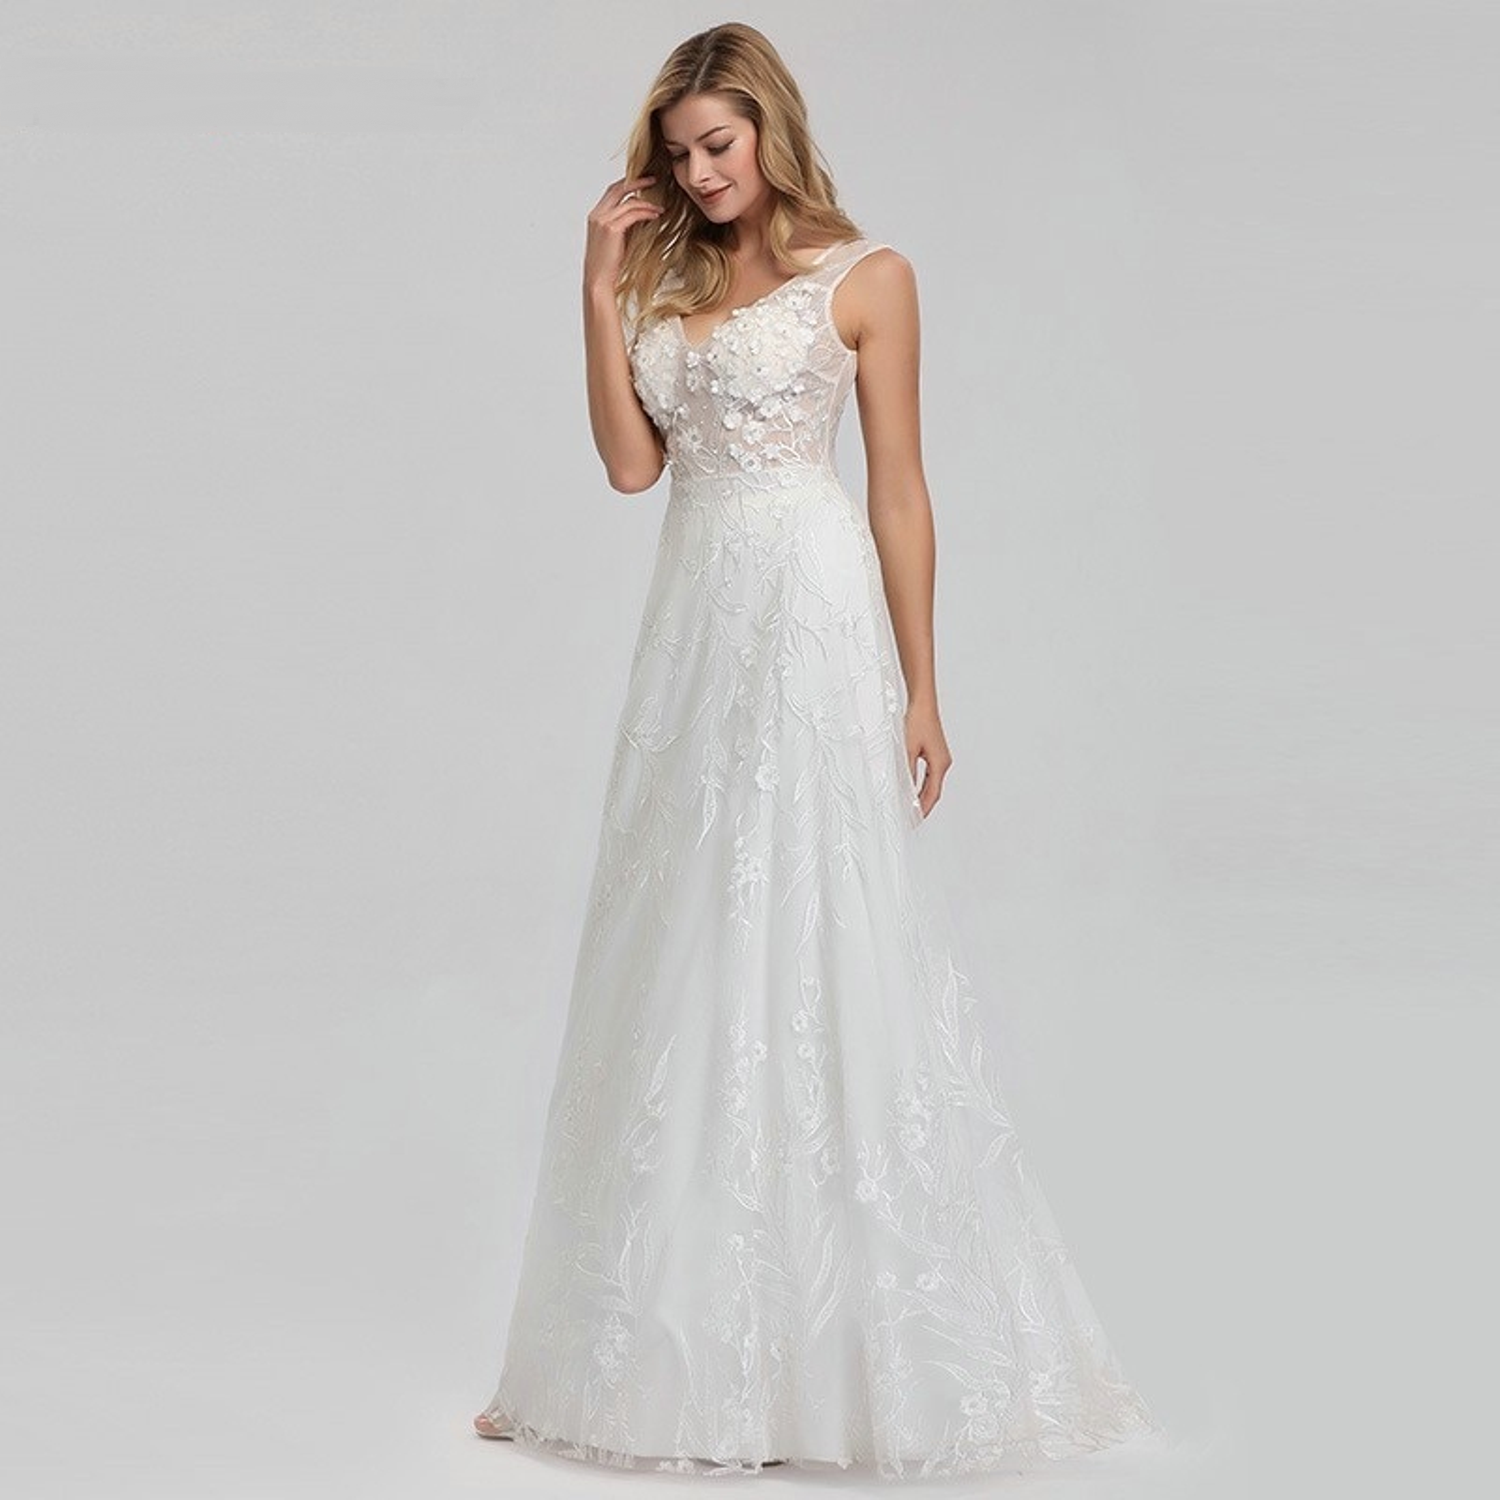 A-line wedding dress with illusion bodice